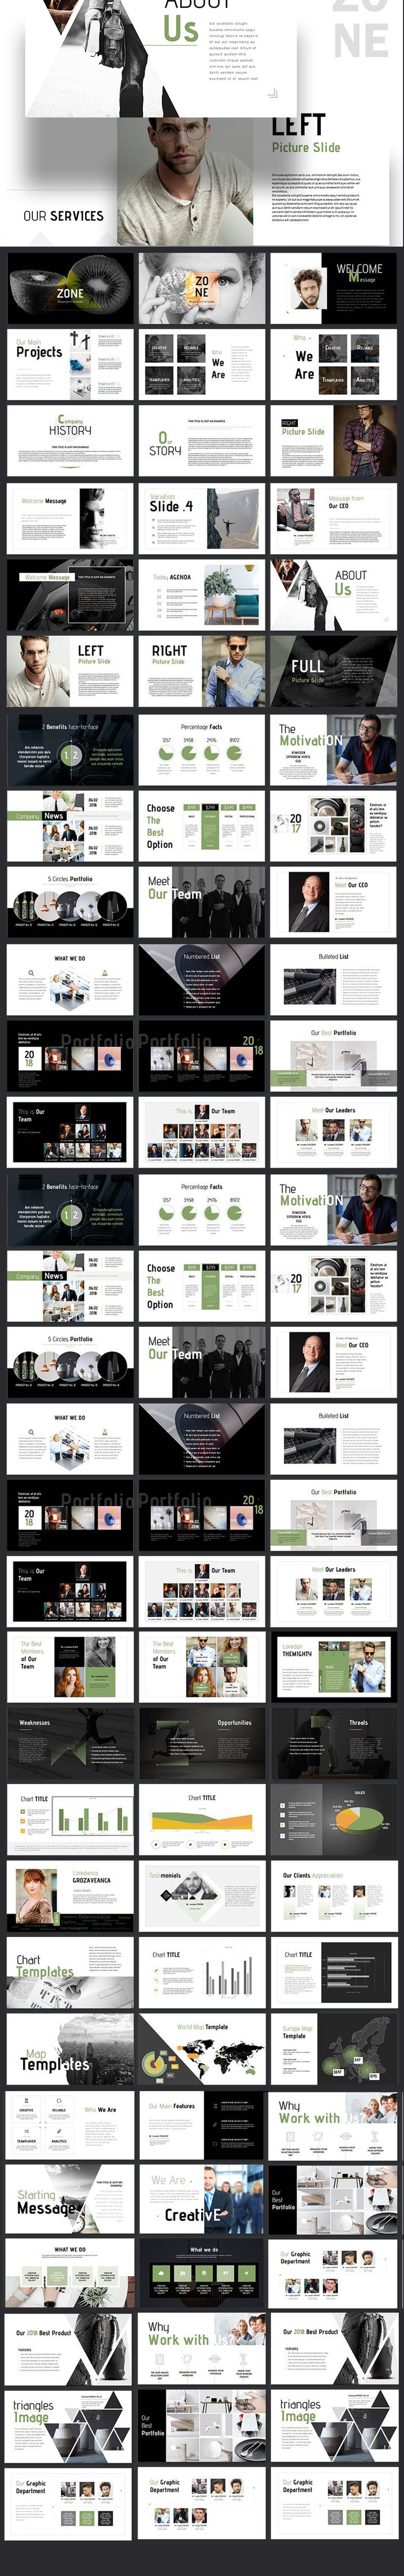 Zone PowerPoint Template | Marketing Powerpoint Templates ...